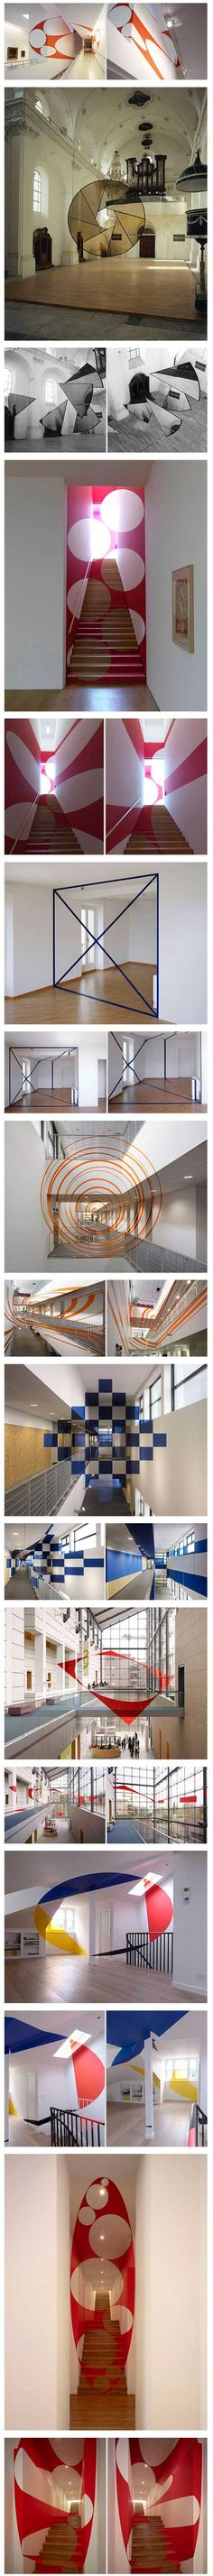 Redefining spaces with astounding anamorphic illusions.